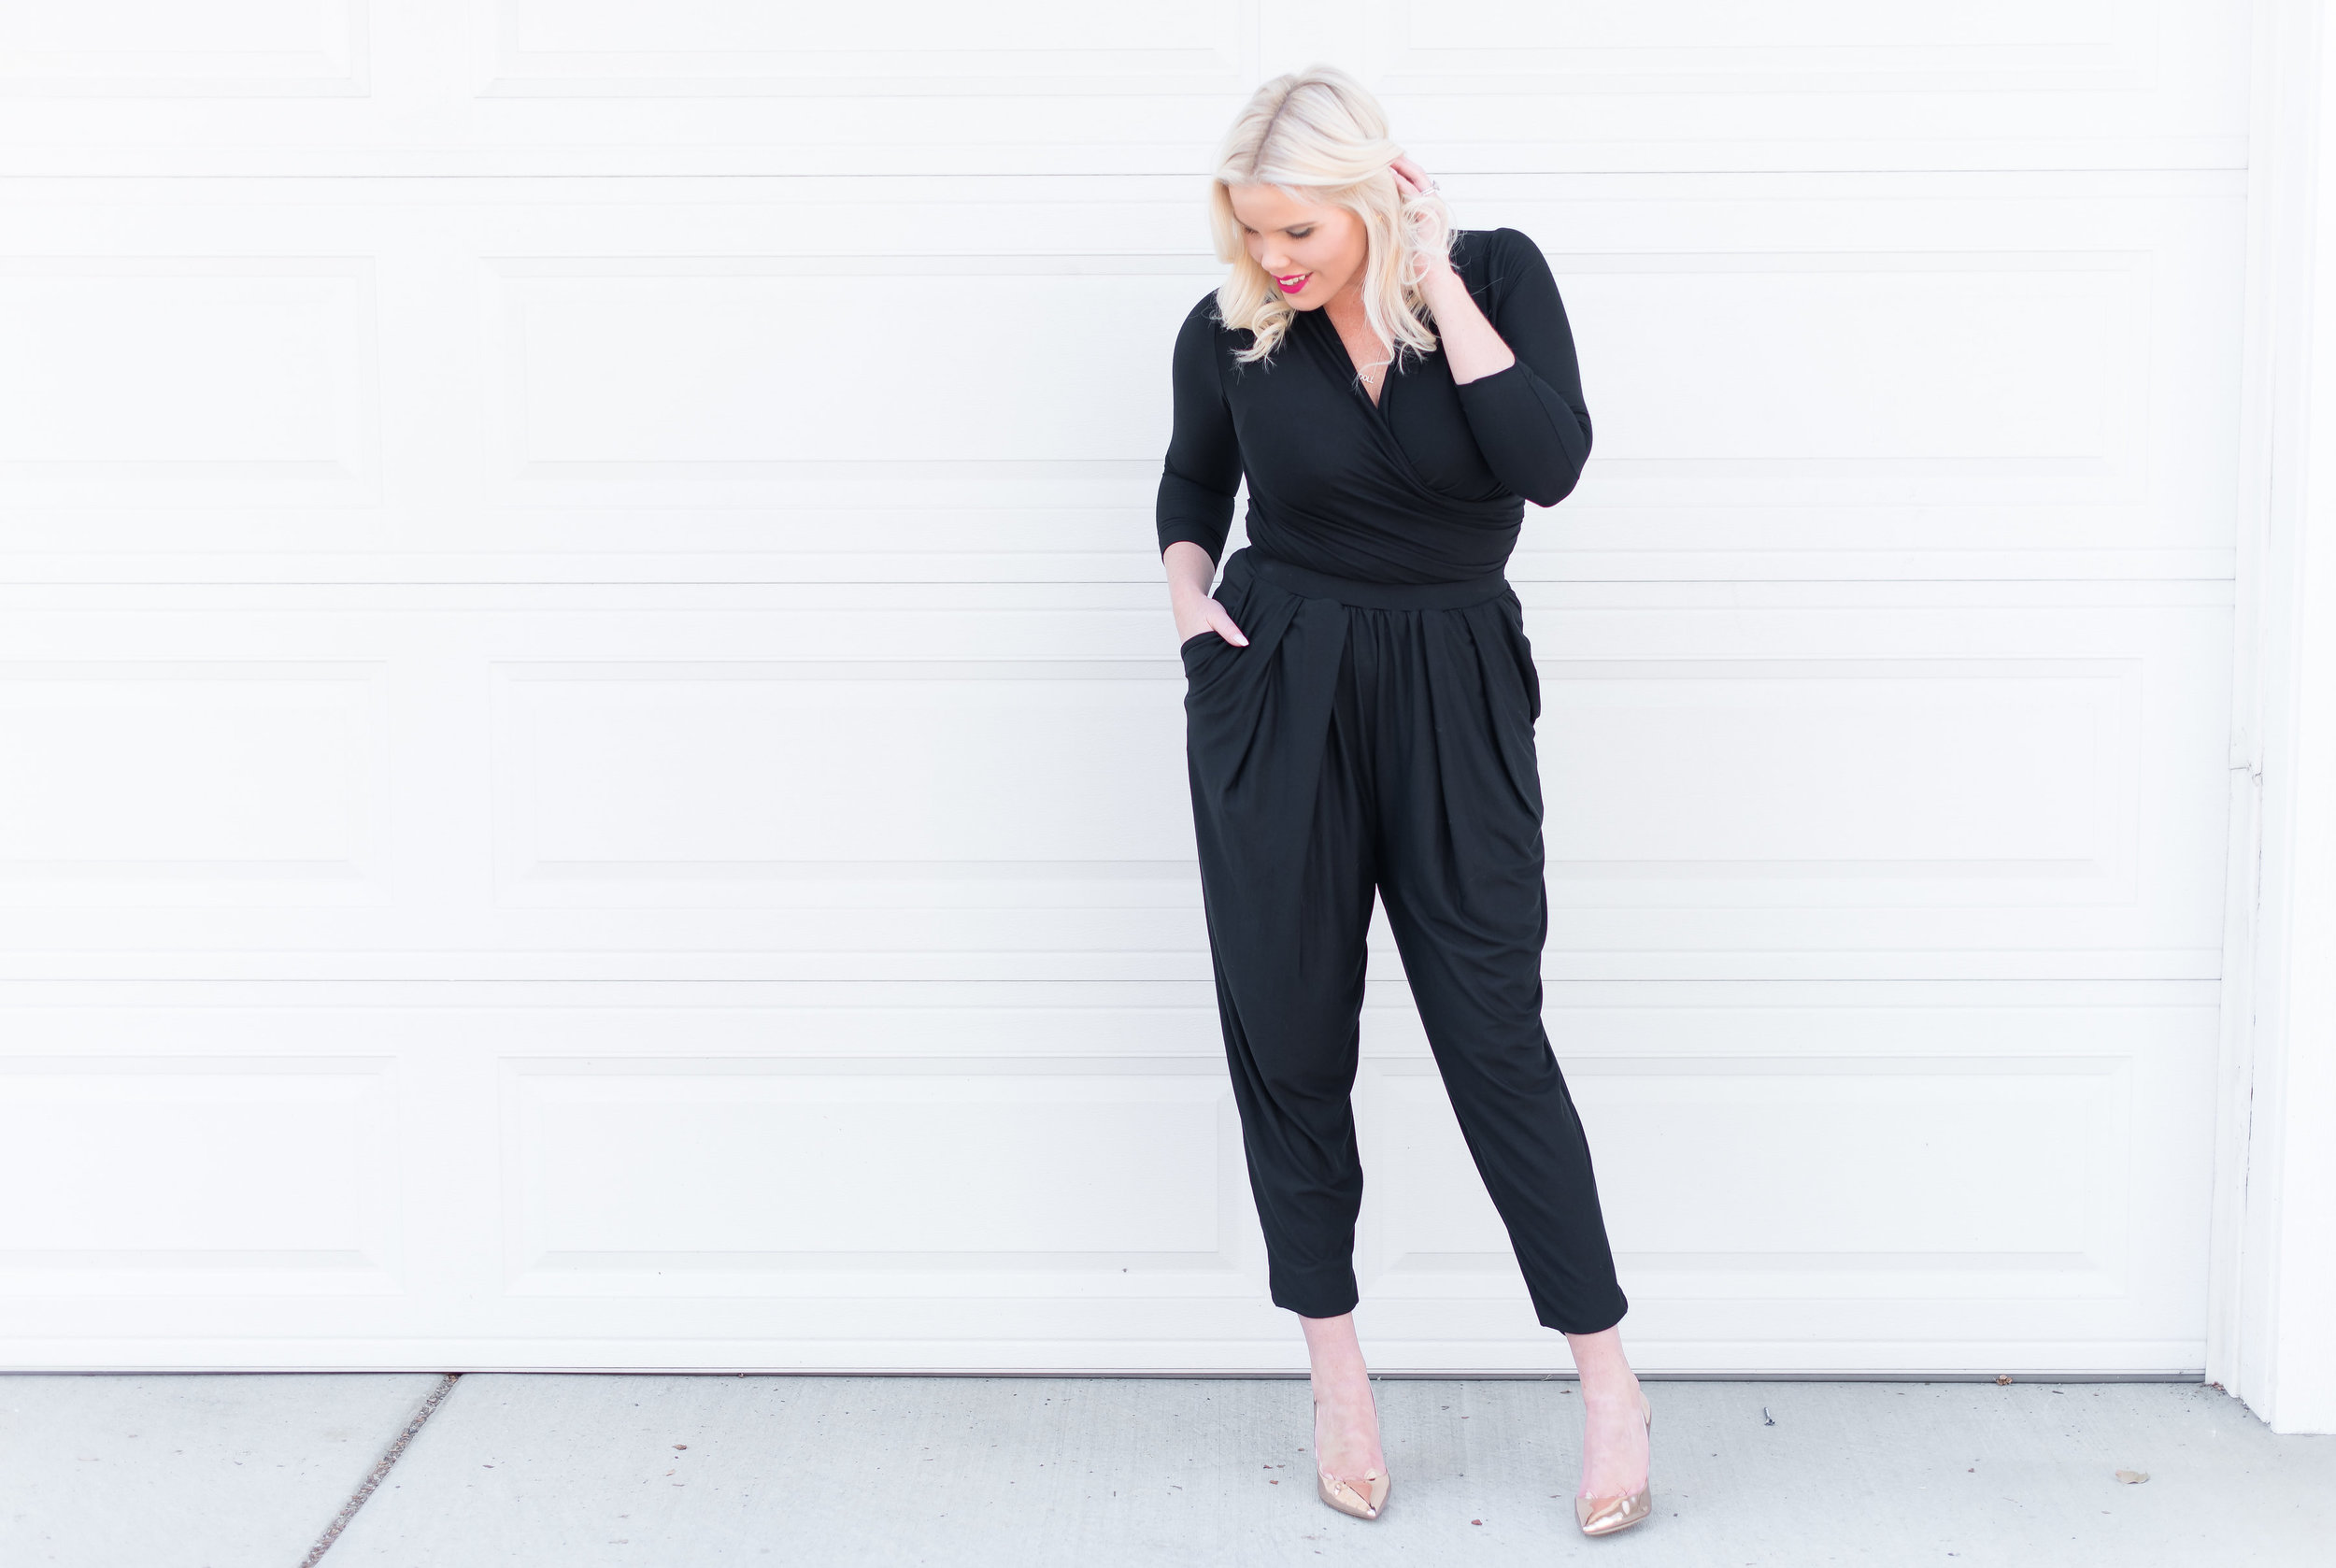 Poppy Row Hangover Pant in black!